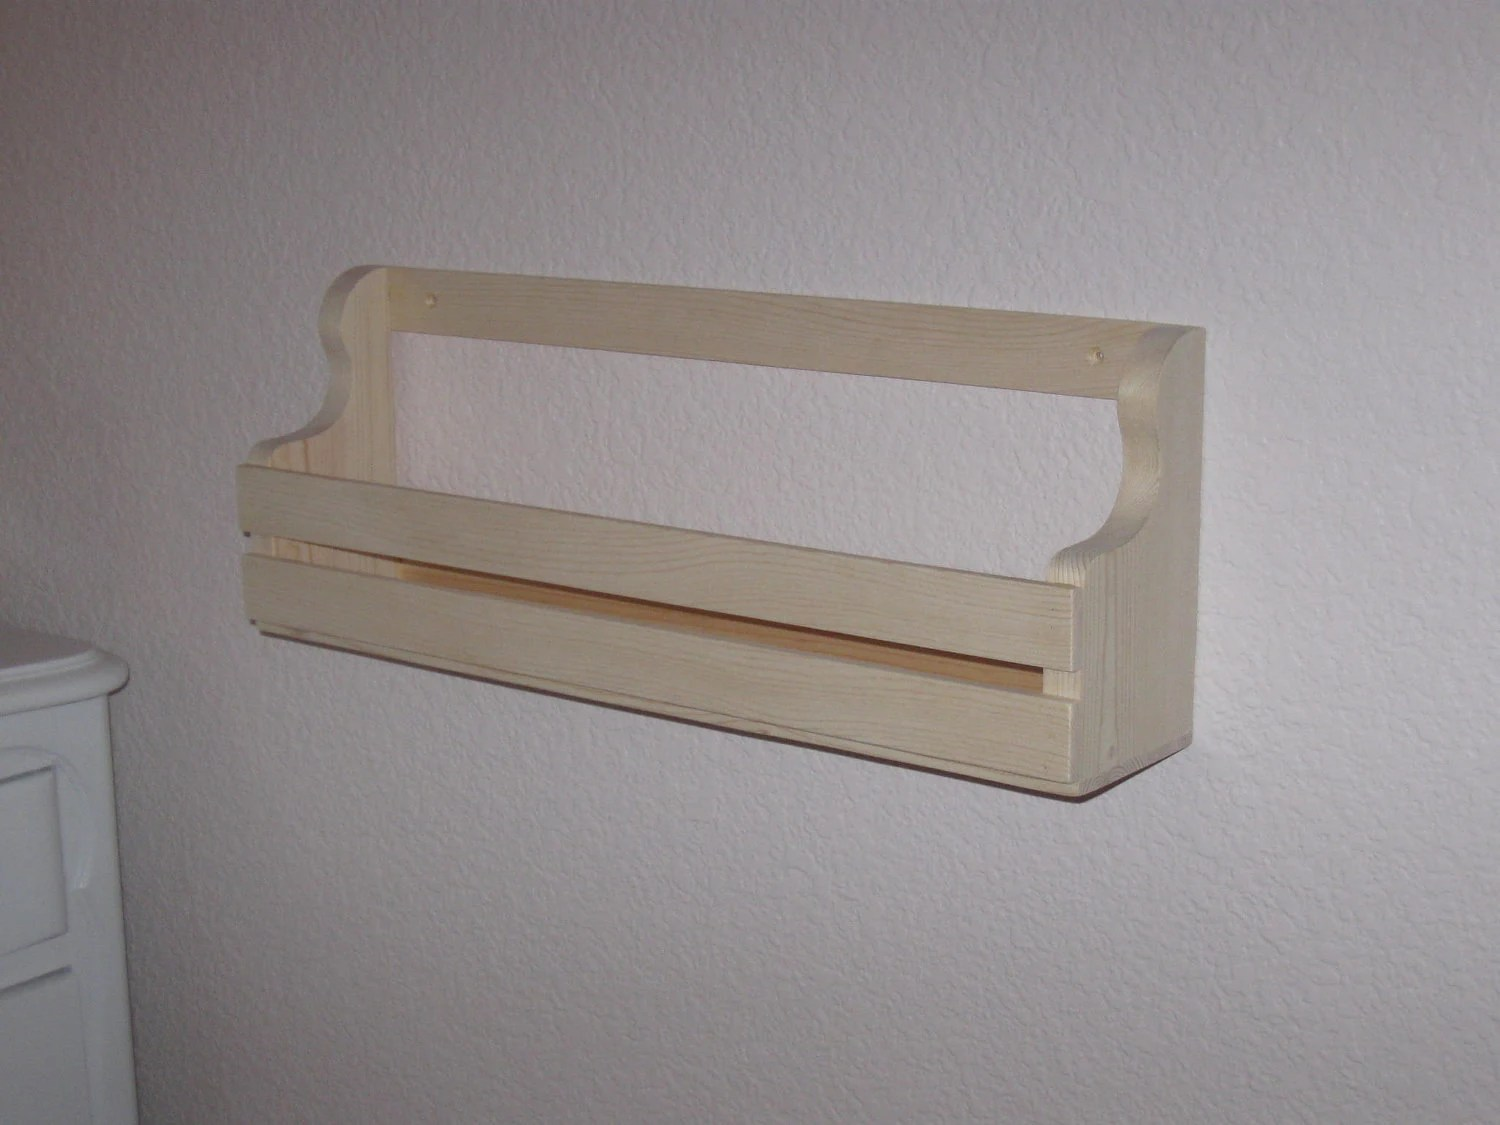 Book rack holder shelf low profile wall mount 20 inches long pine/pg for kids books